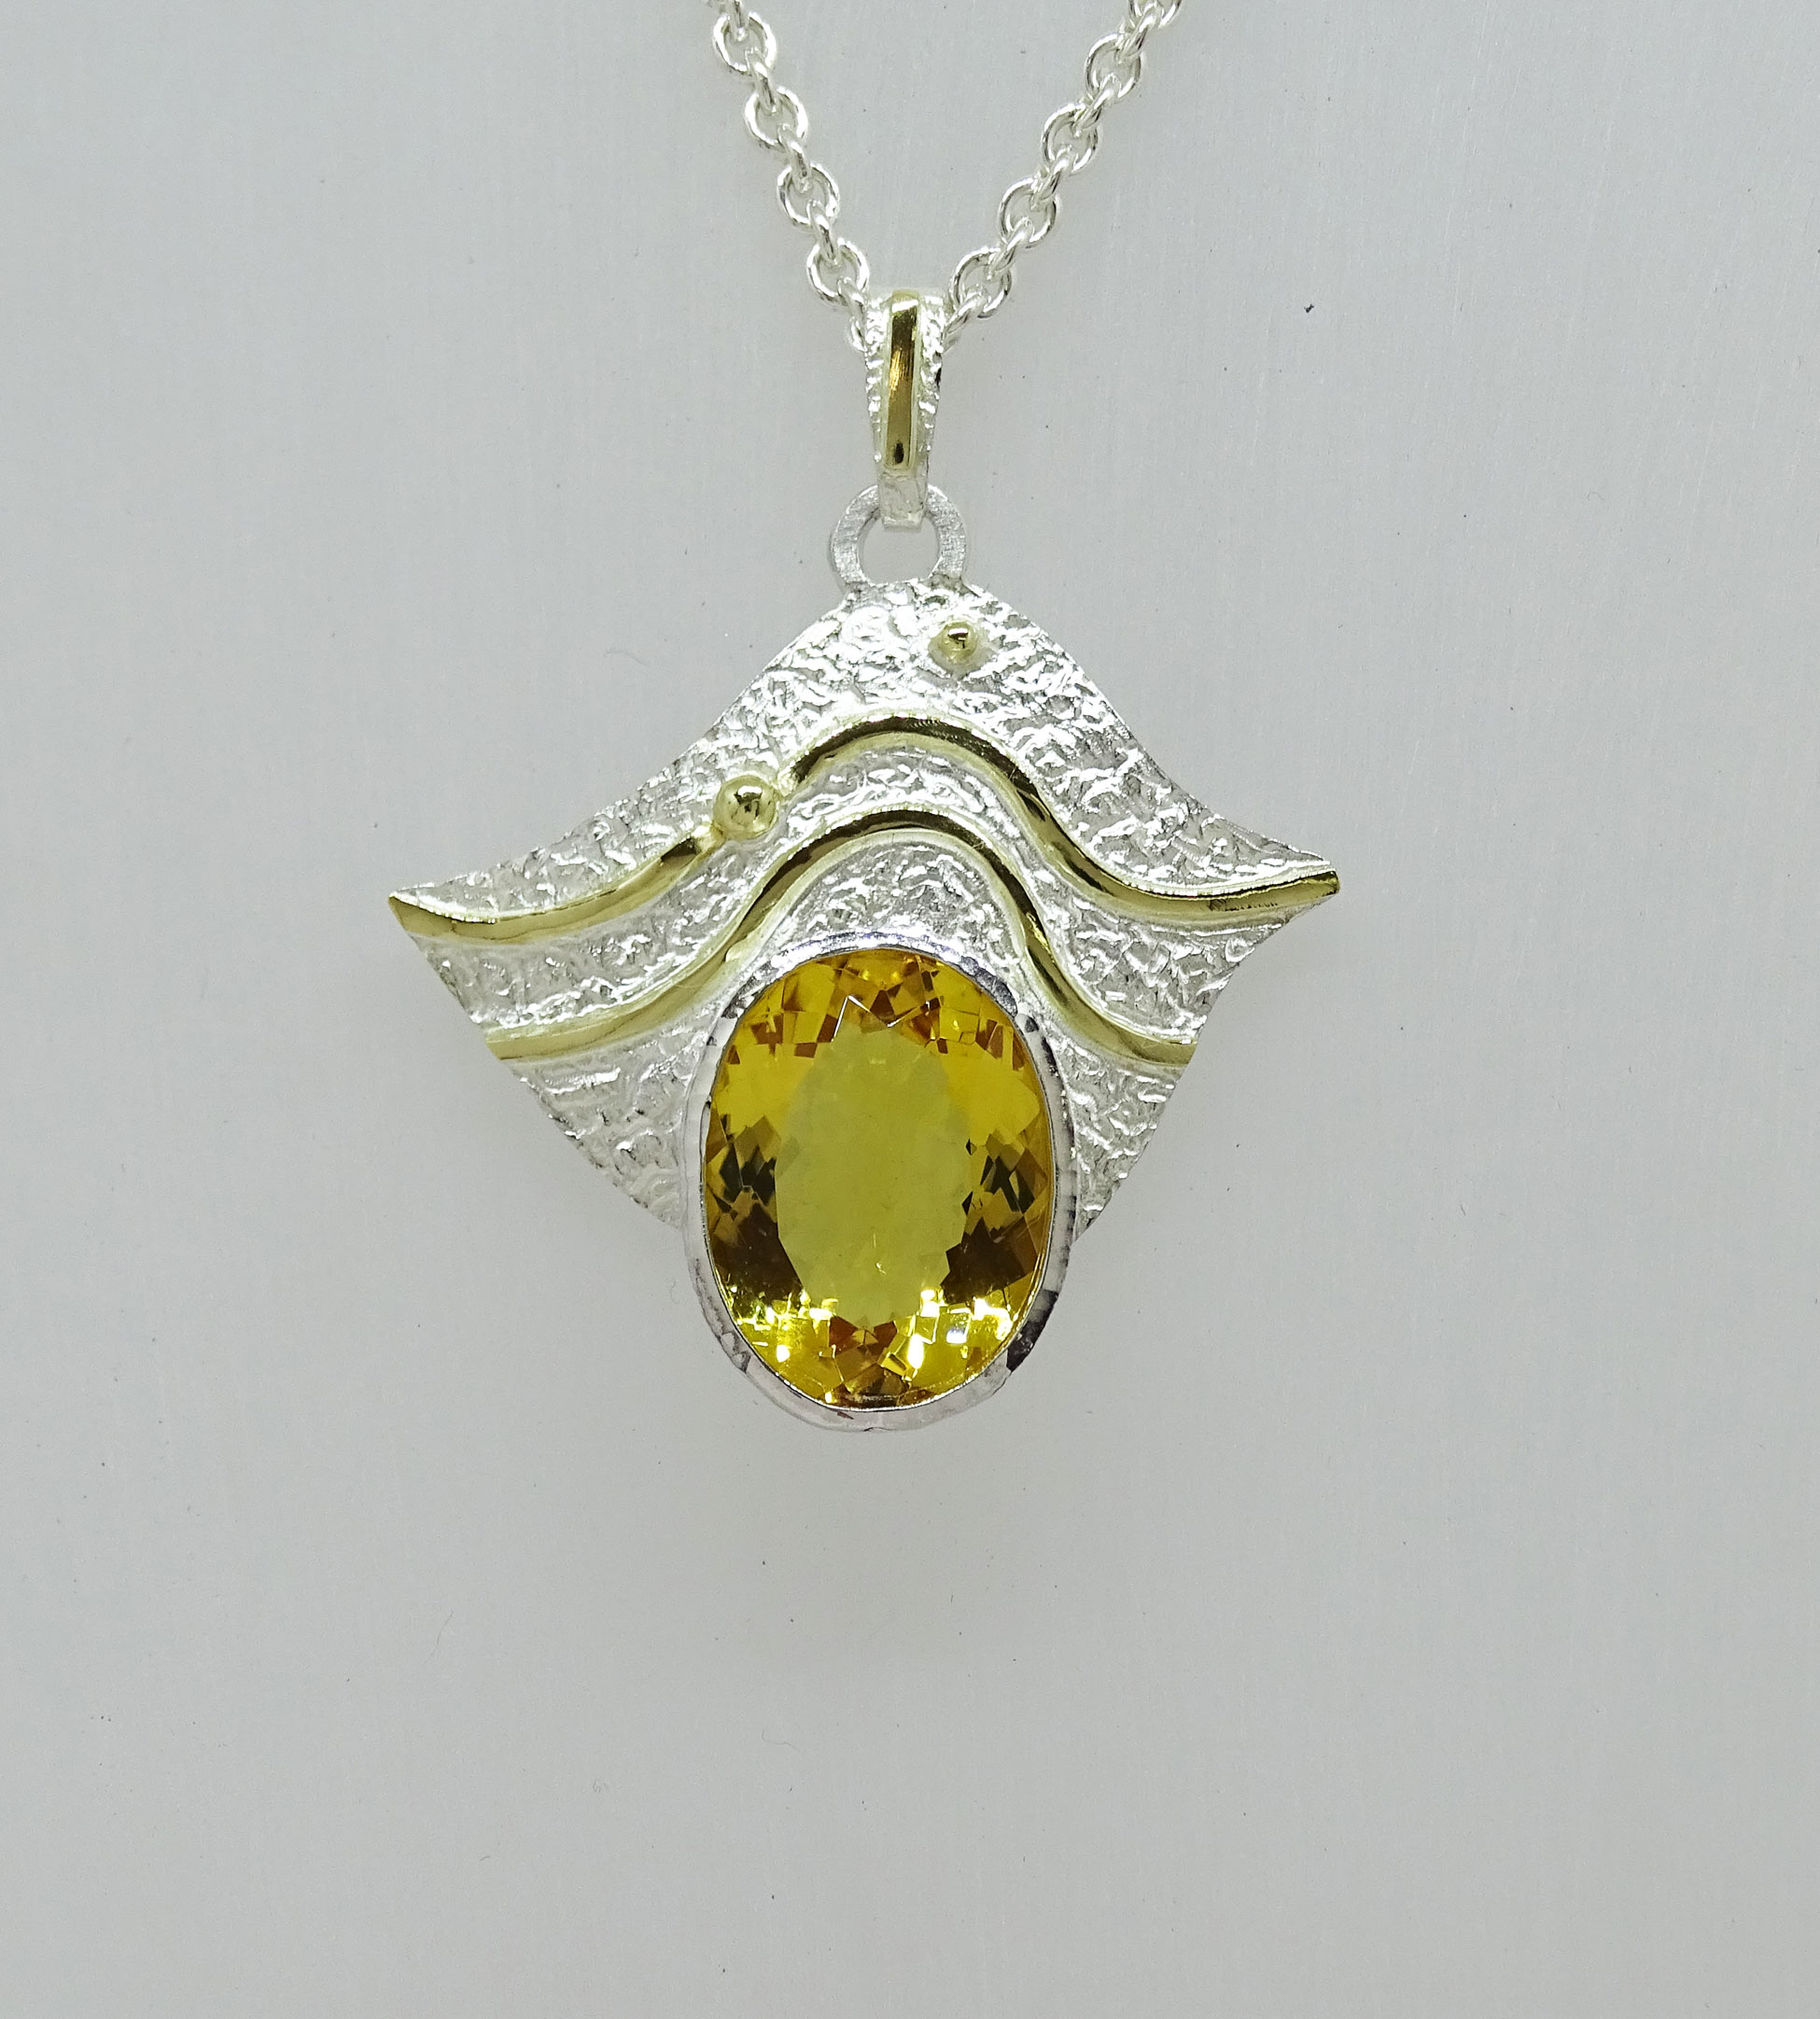 34ct Imperial Topaz Pendant NU Goldsmith